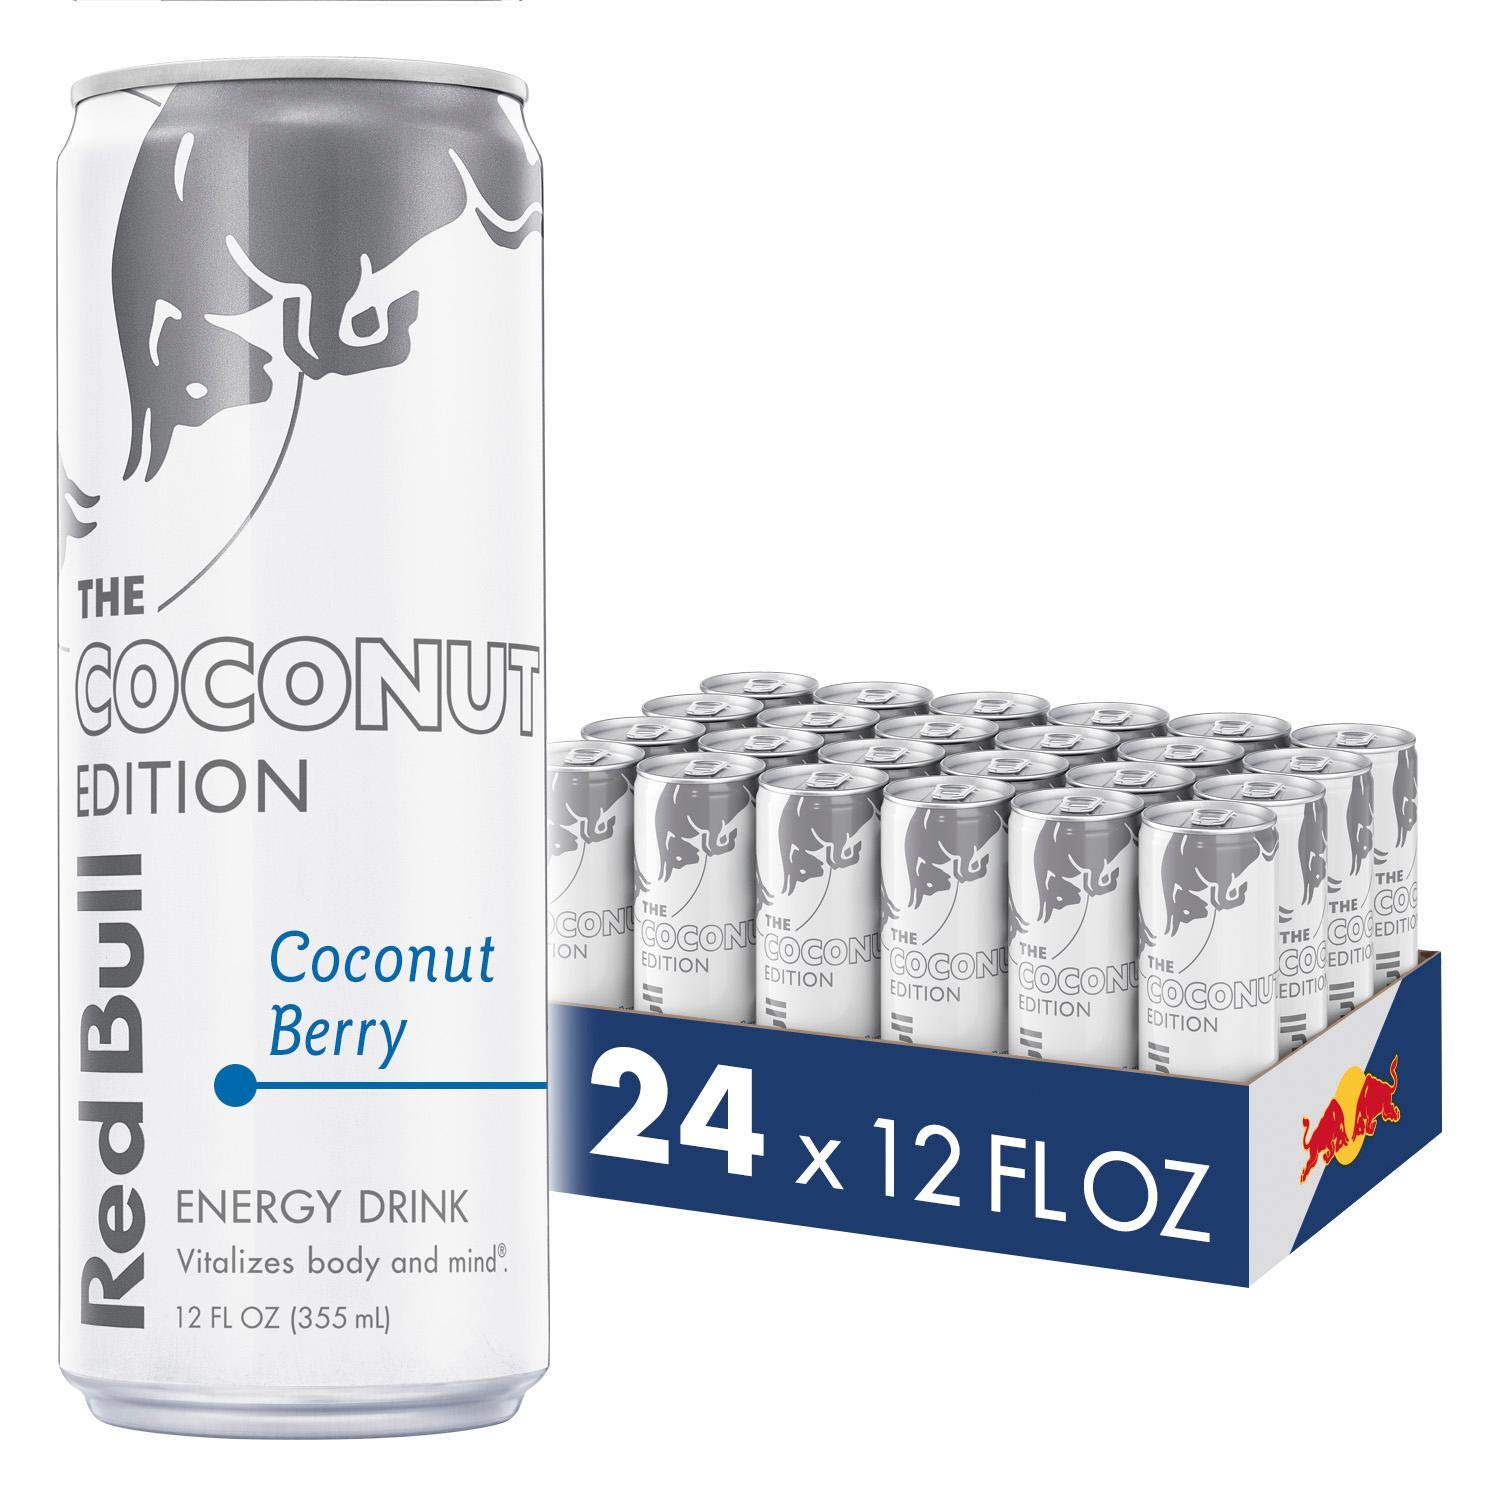 Red Bull Energy Drink, Coconut Berry, 24 Pack of 12 Fl Oz, Coconut Edition